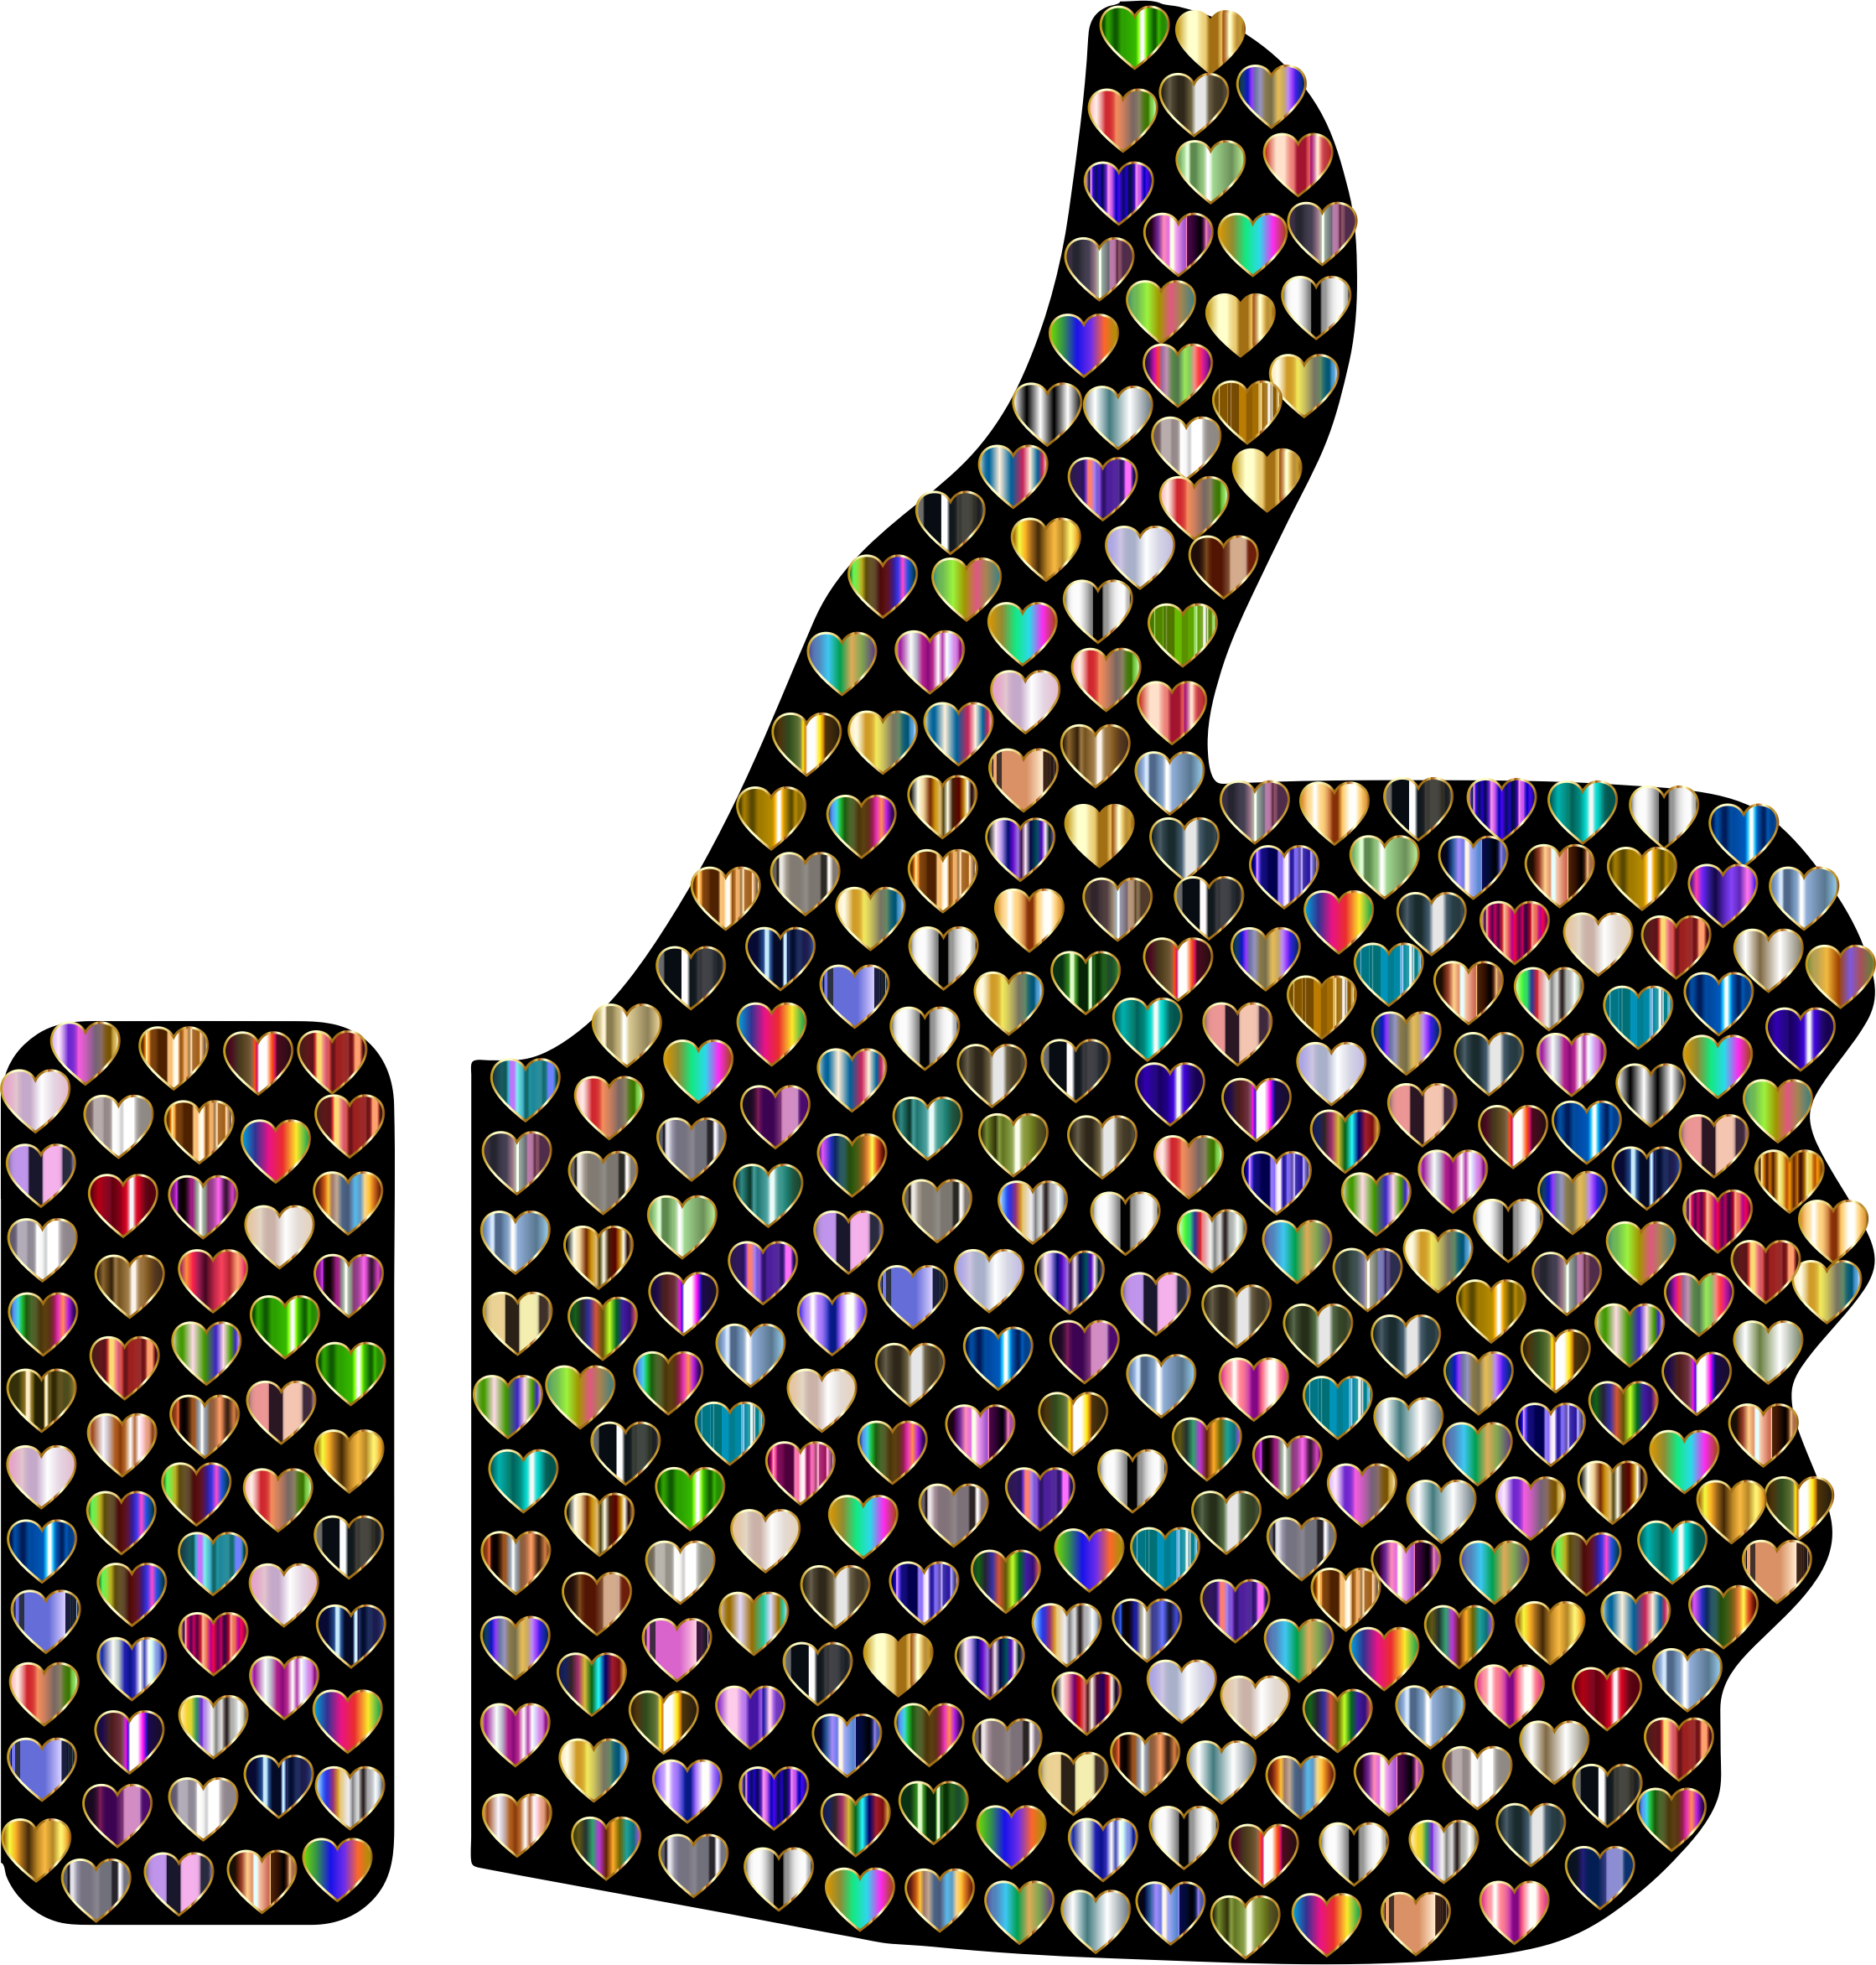 Prismatic Hearts Thumbs Up Silhouette 9 by GDJ